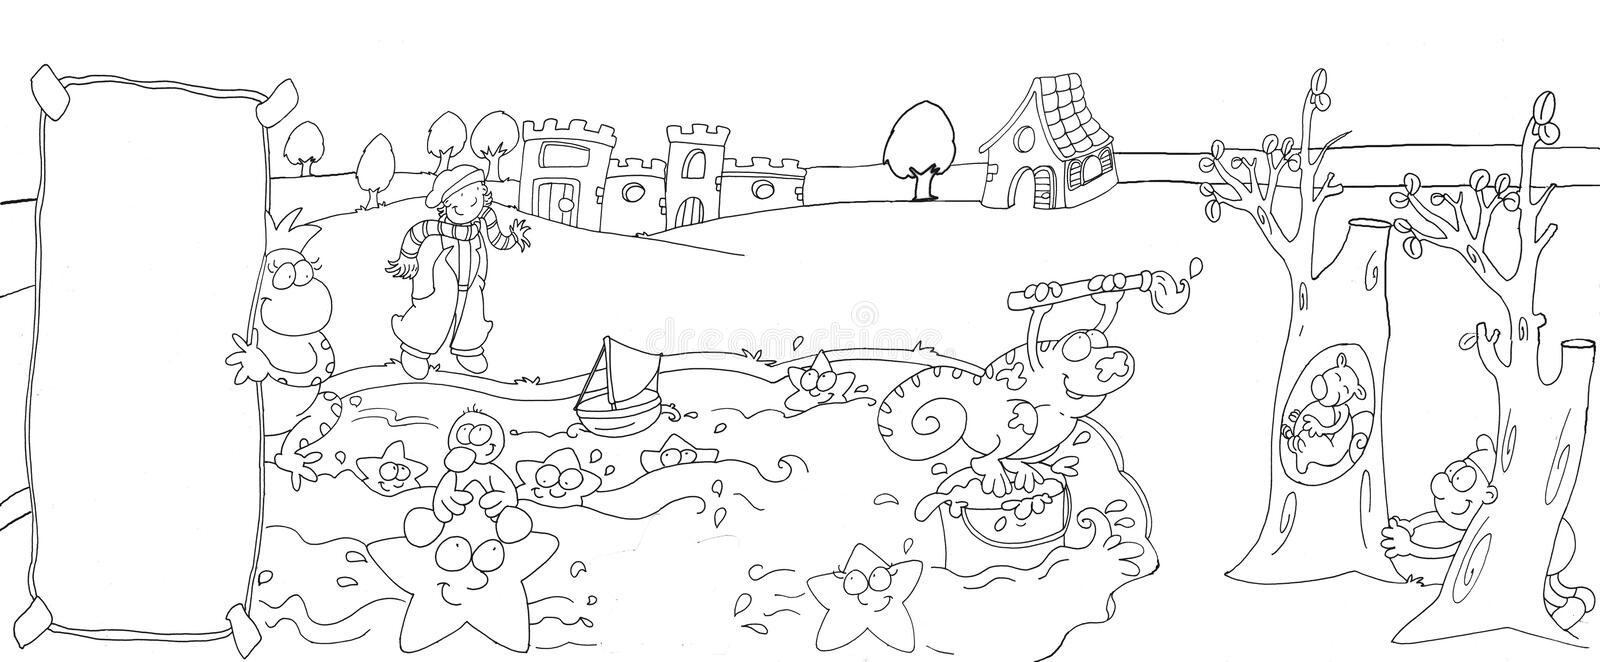 landscape lake with castle and animals chameleon with brush,chine drawn by color vector illustration